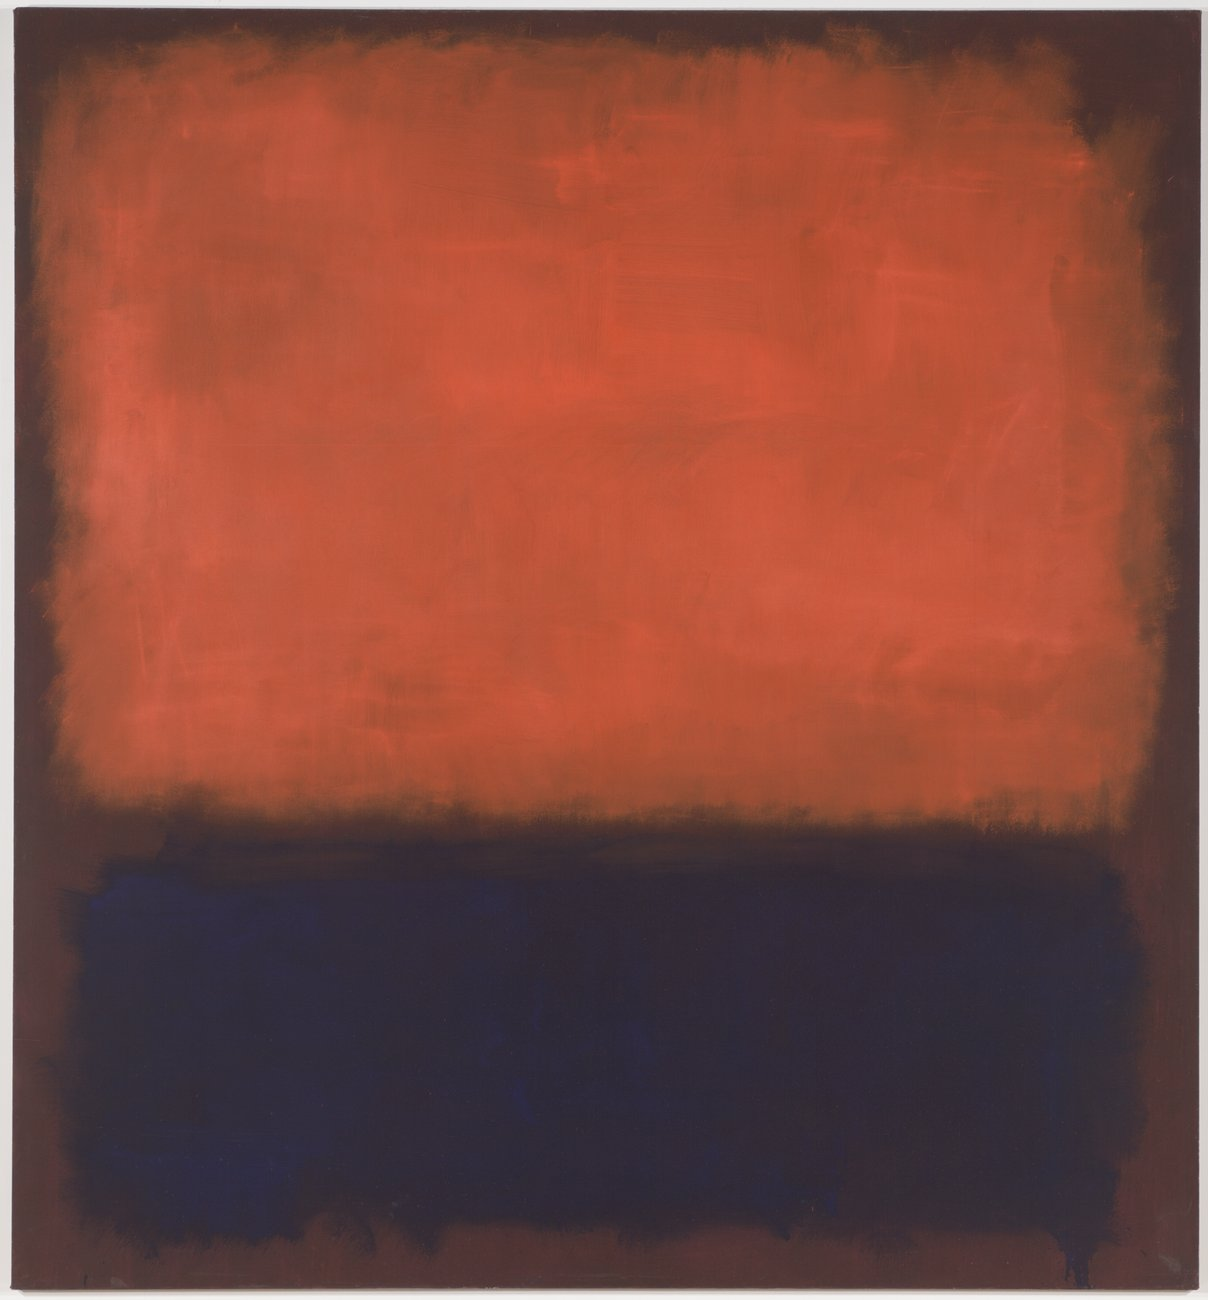 Artwork image, Mark Rothko's No. 14, 1960, 1960